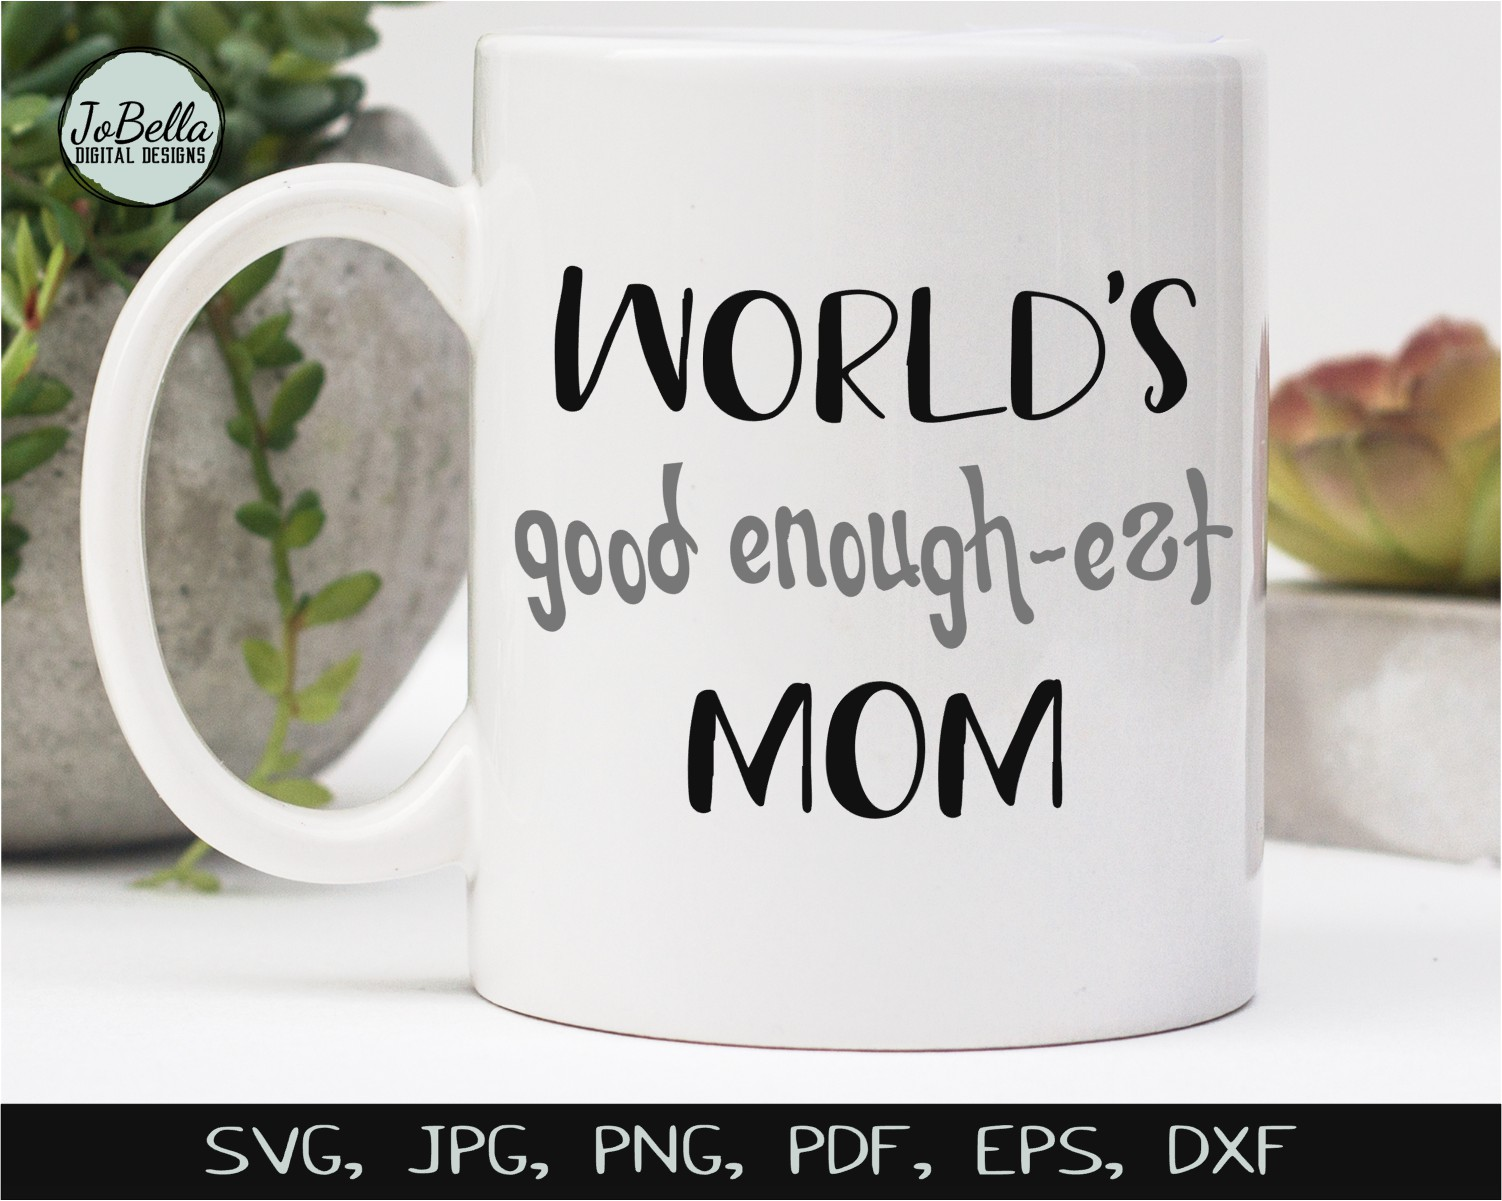 Funny Mom SVG, Sublimation Design and Mother's Day Printable example image 3